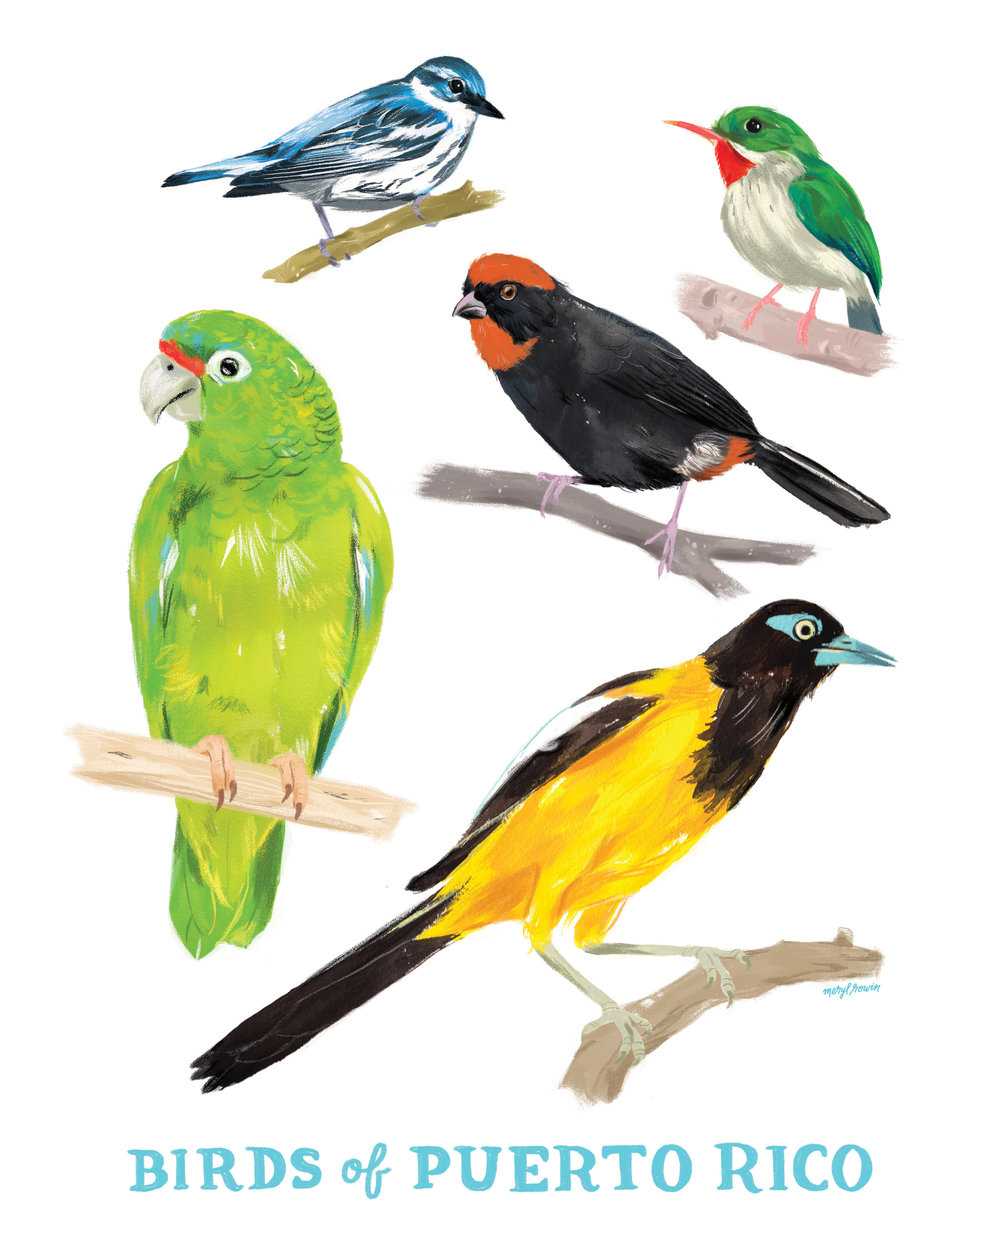 Birds of Puerto Rico  - *All Proceeds Benefit Puerto Rico Hurricane Relief* Birds of Puerto Rico 8x10